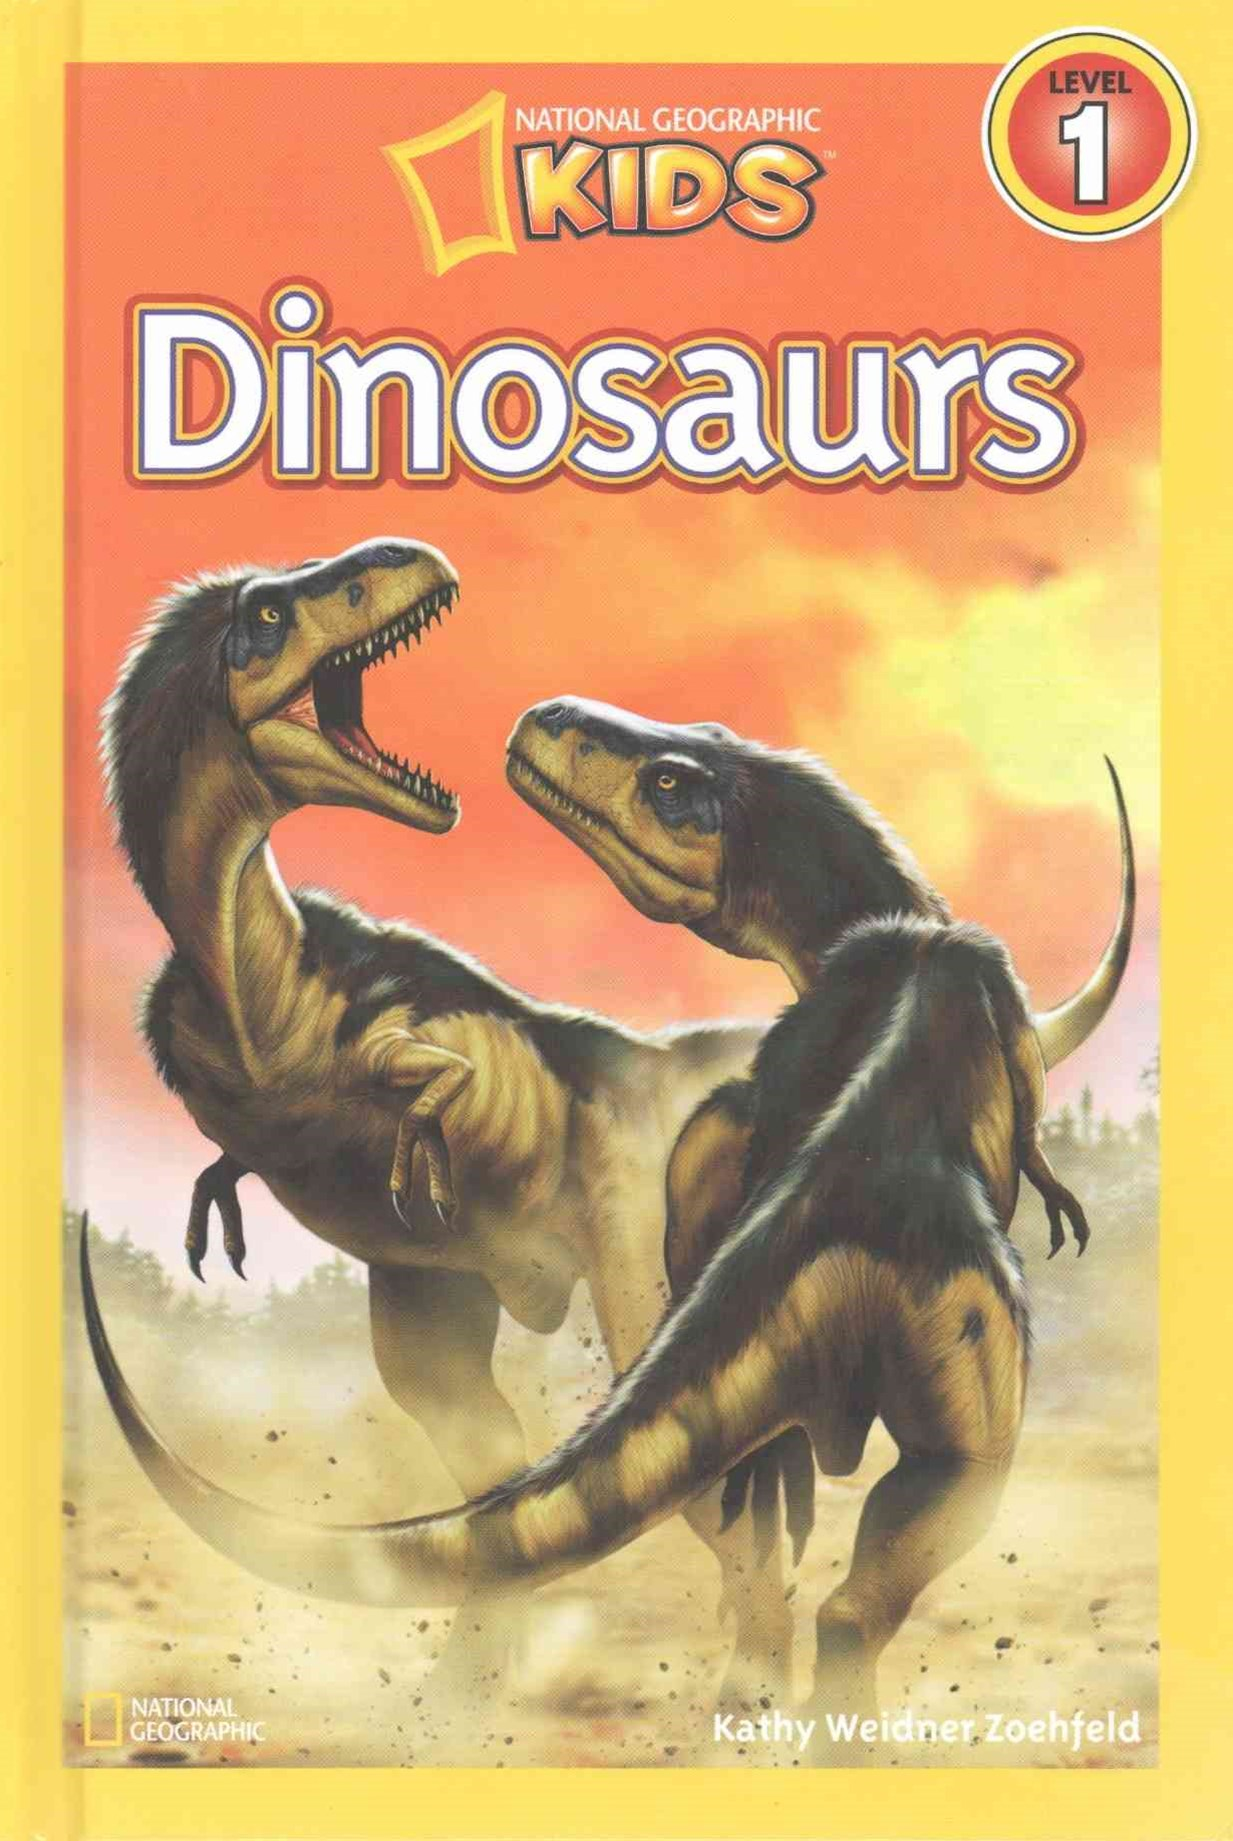 Dinosaurs (1 Hardcover/1 CD)